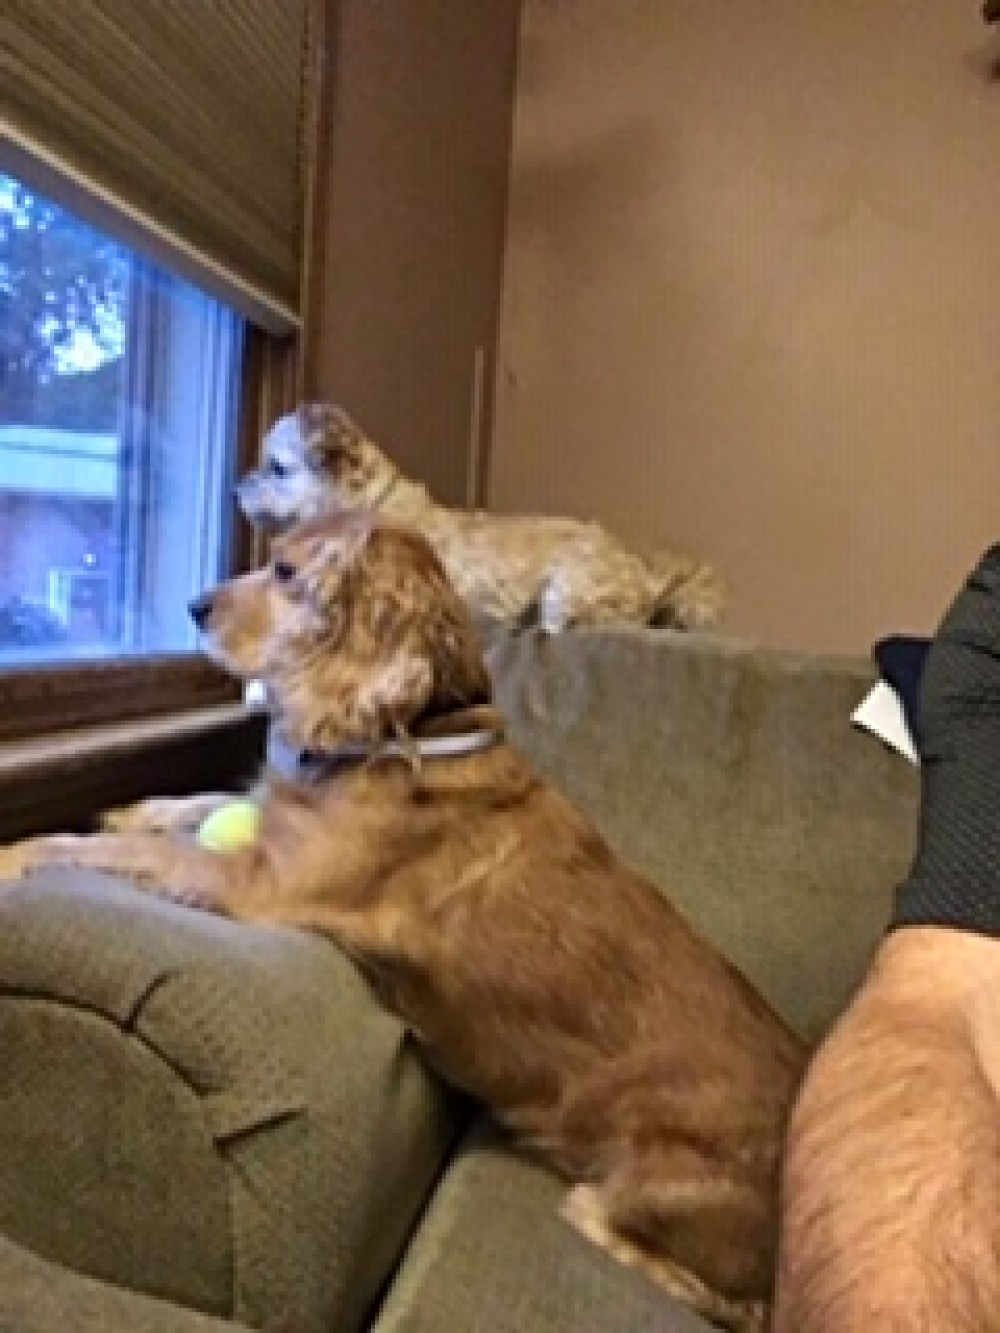 Teddy (in the foreground) was diagnosed with a serious heart condition not  long after flying up to Mass. Our amazing partner, Buddy Dog Humane Society  in ...